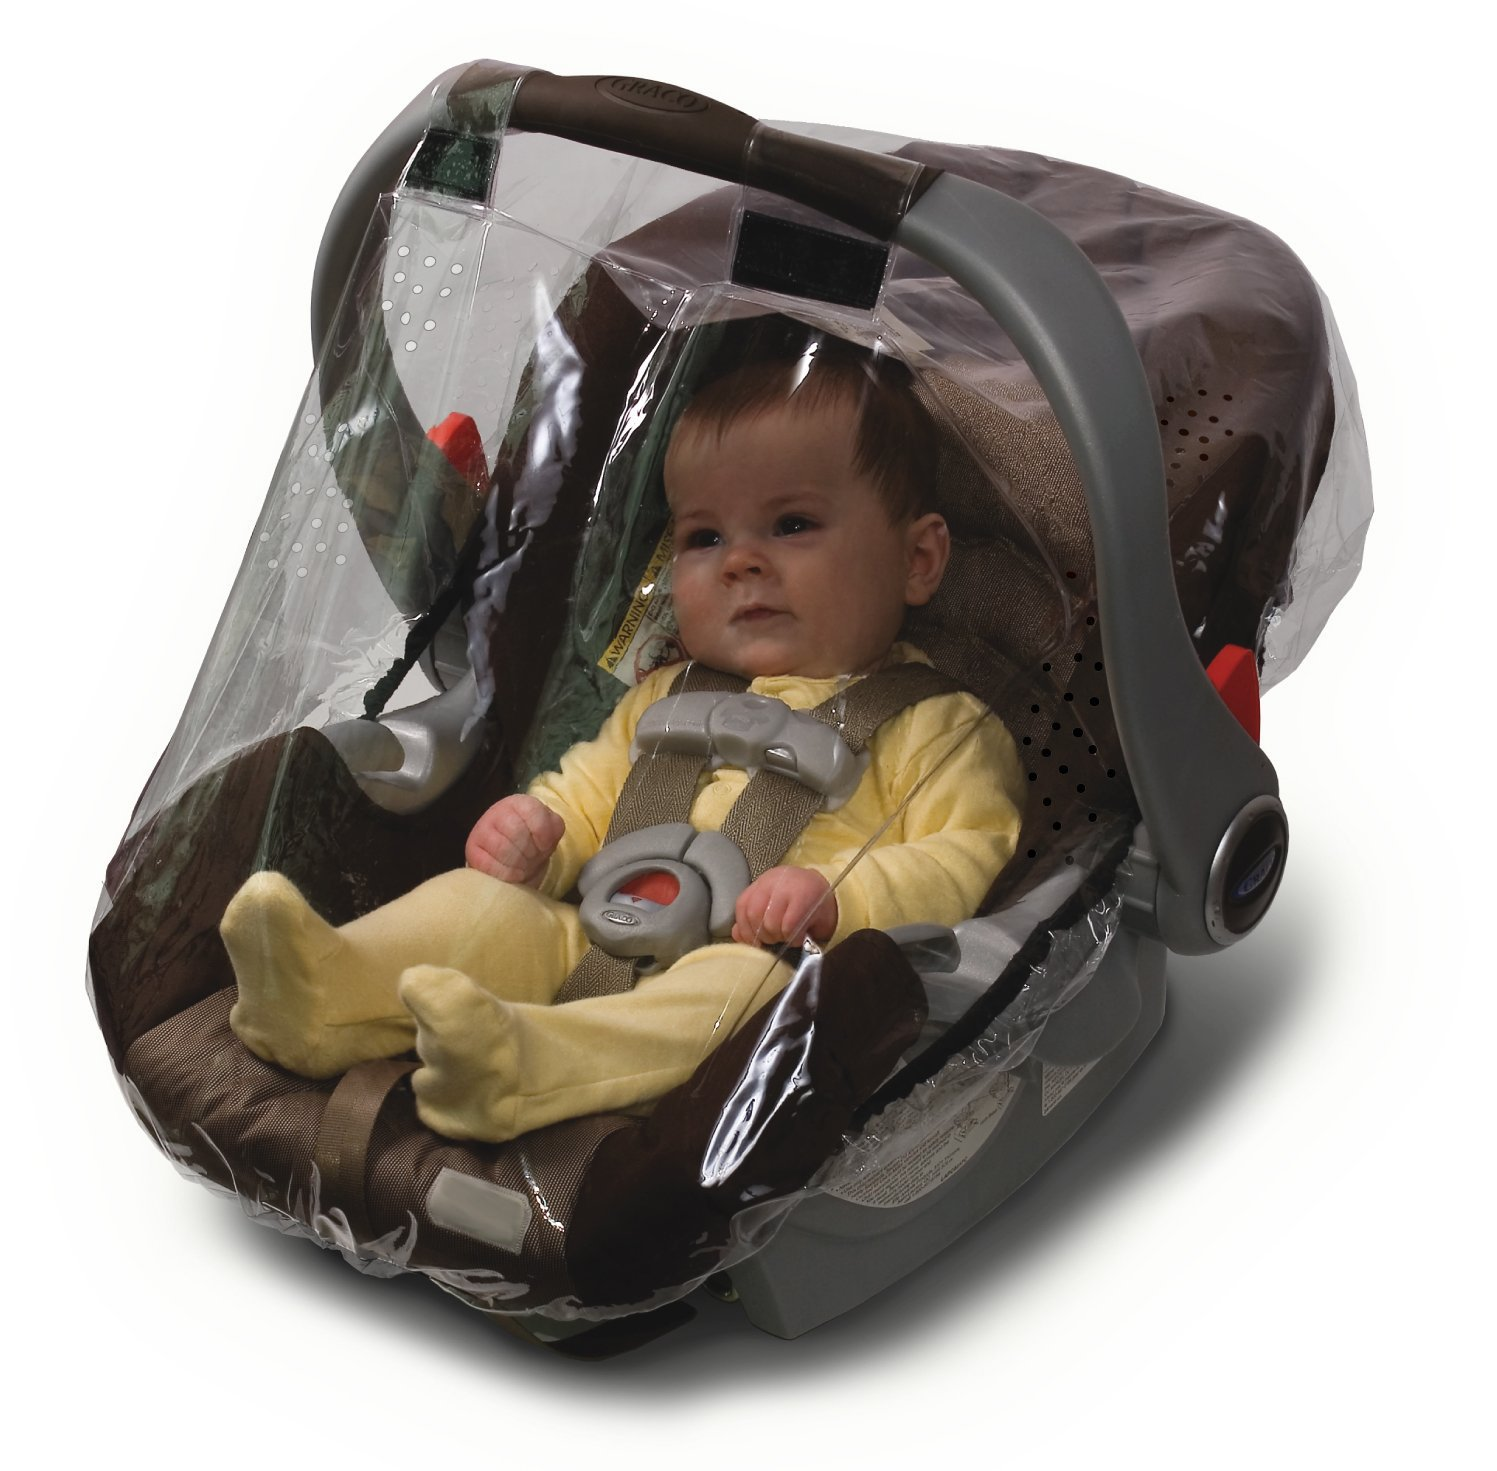 b3ce1a9d7 Amazon.com   Jolly Jumper Weathershield for Infant Car Seat ...